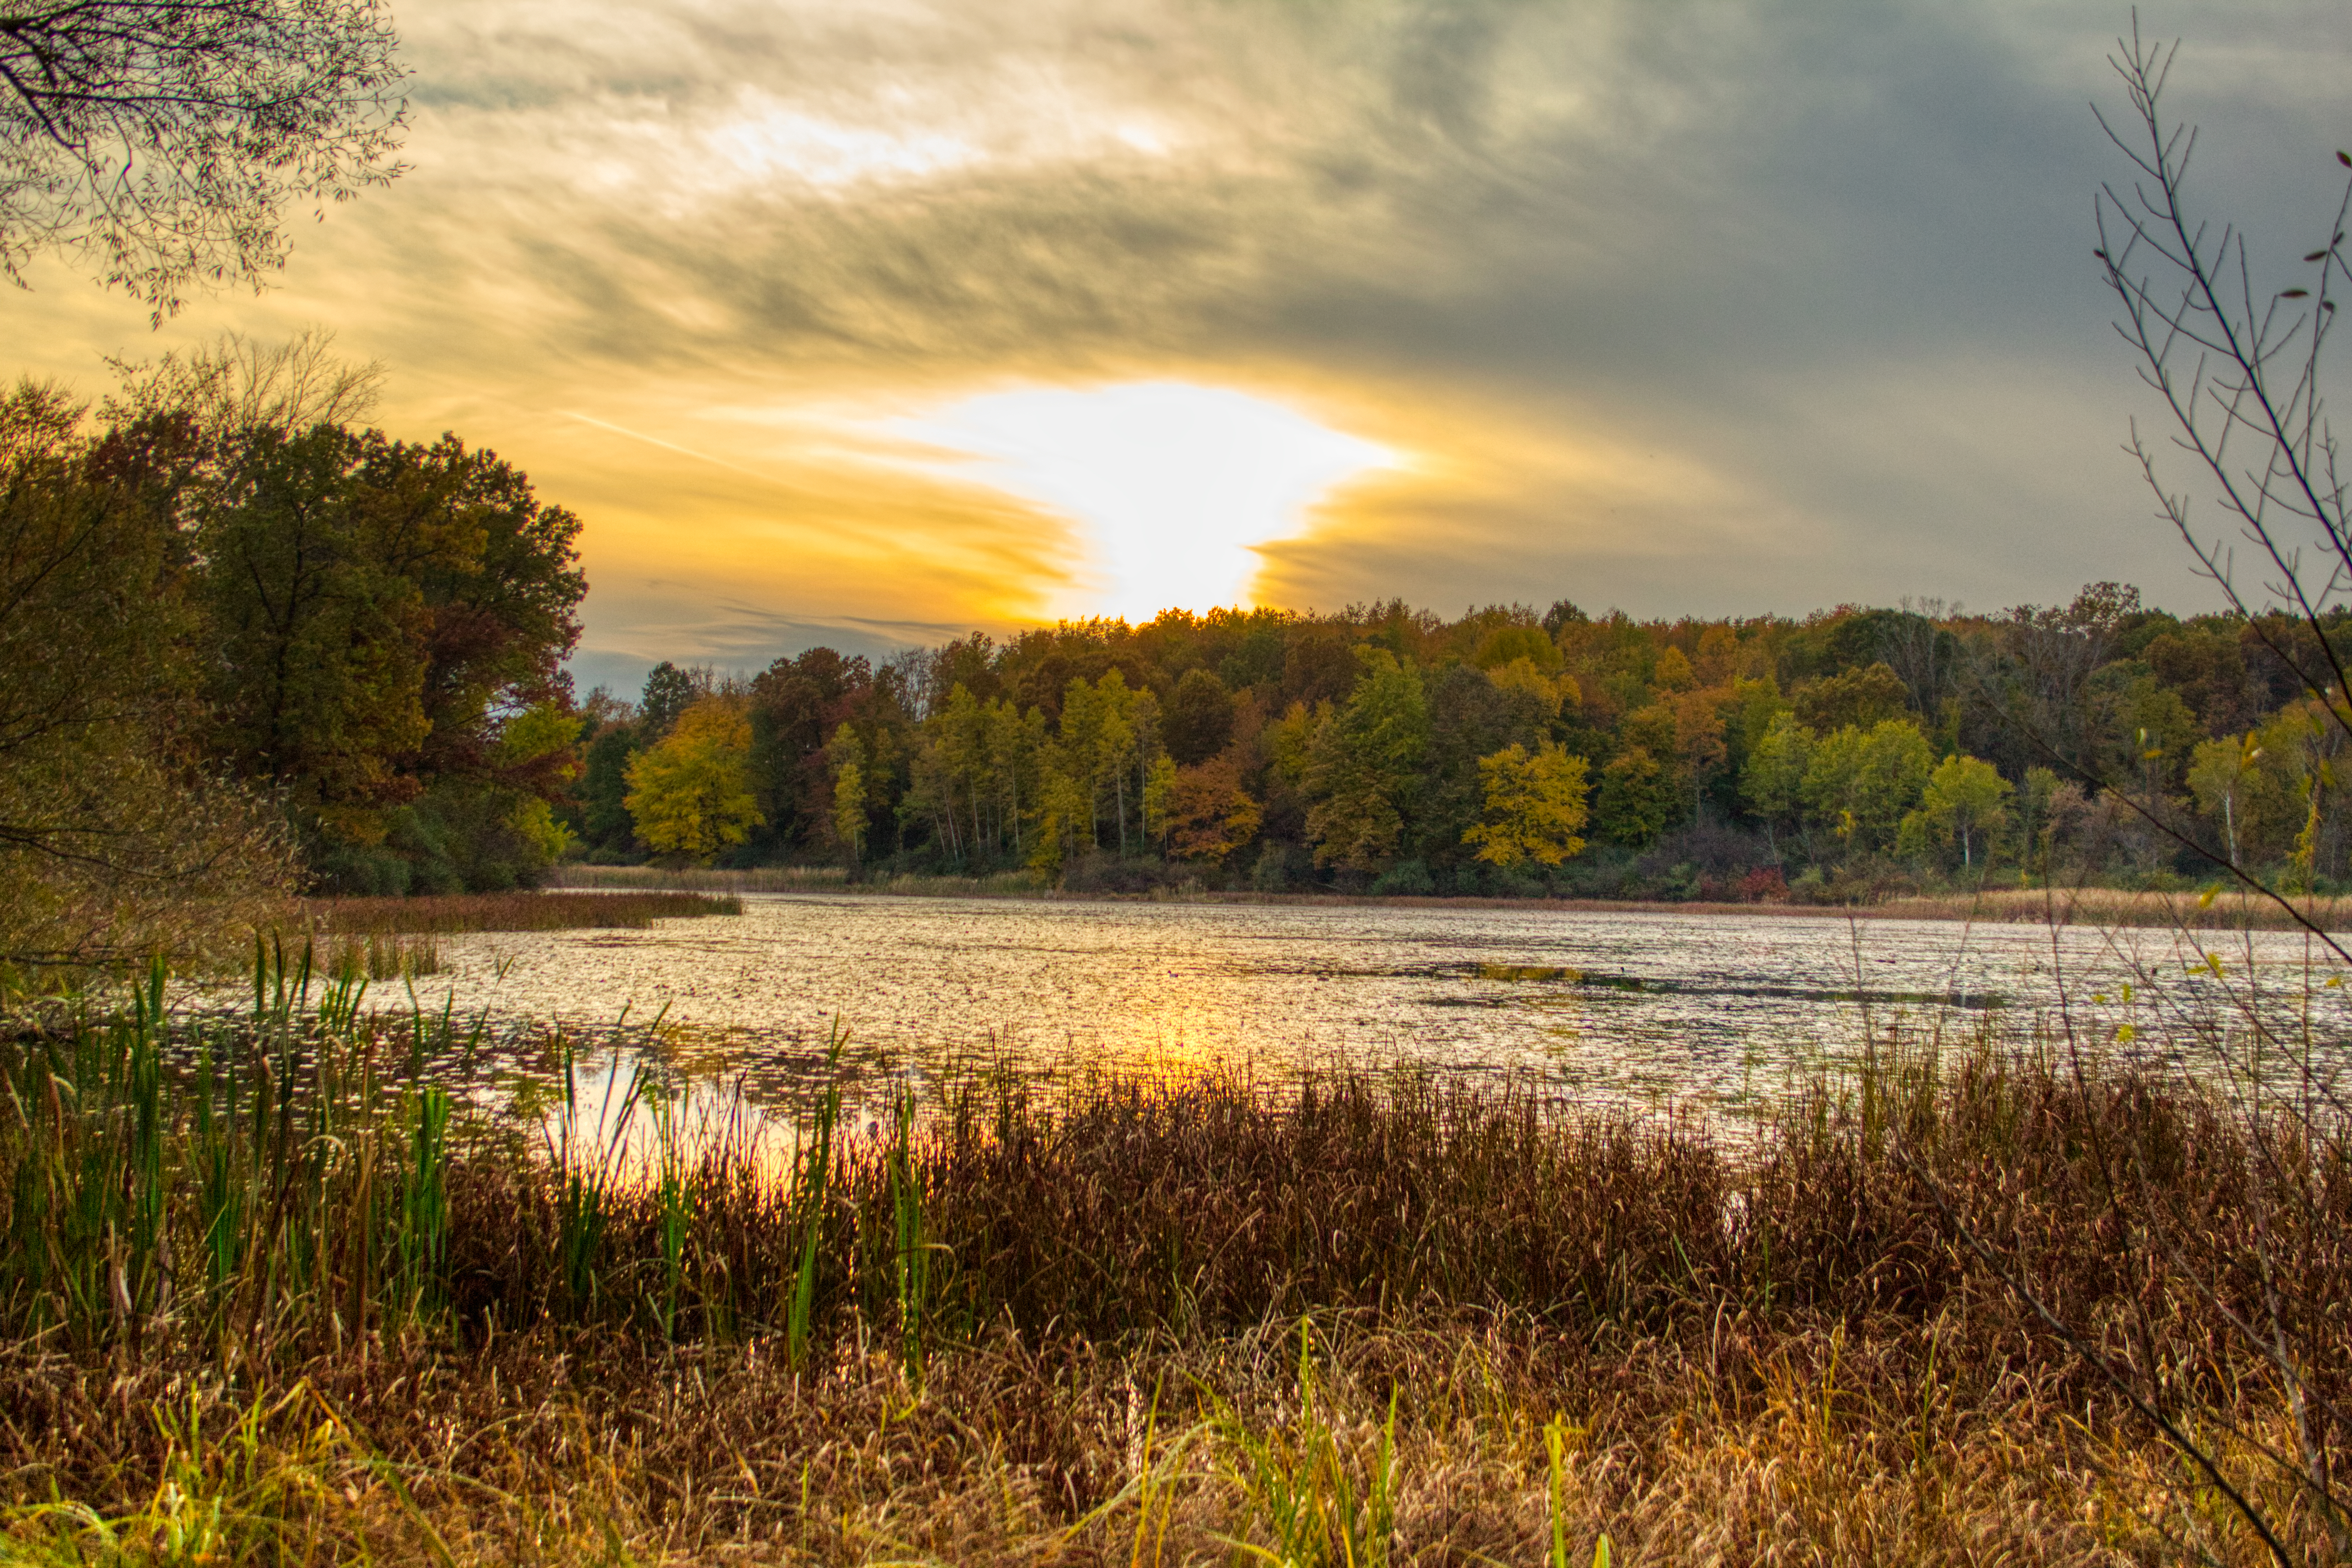 In the foreground is wild grass that borders a body of water. On the other side of the body of water are many multicolored trees. There is a sunset in the sky.